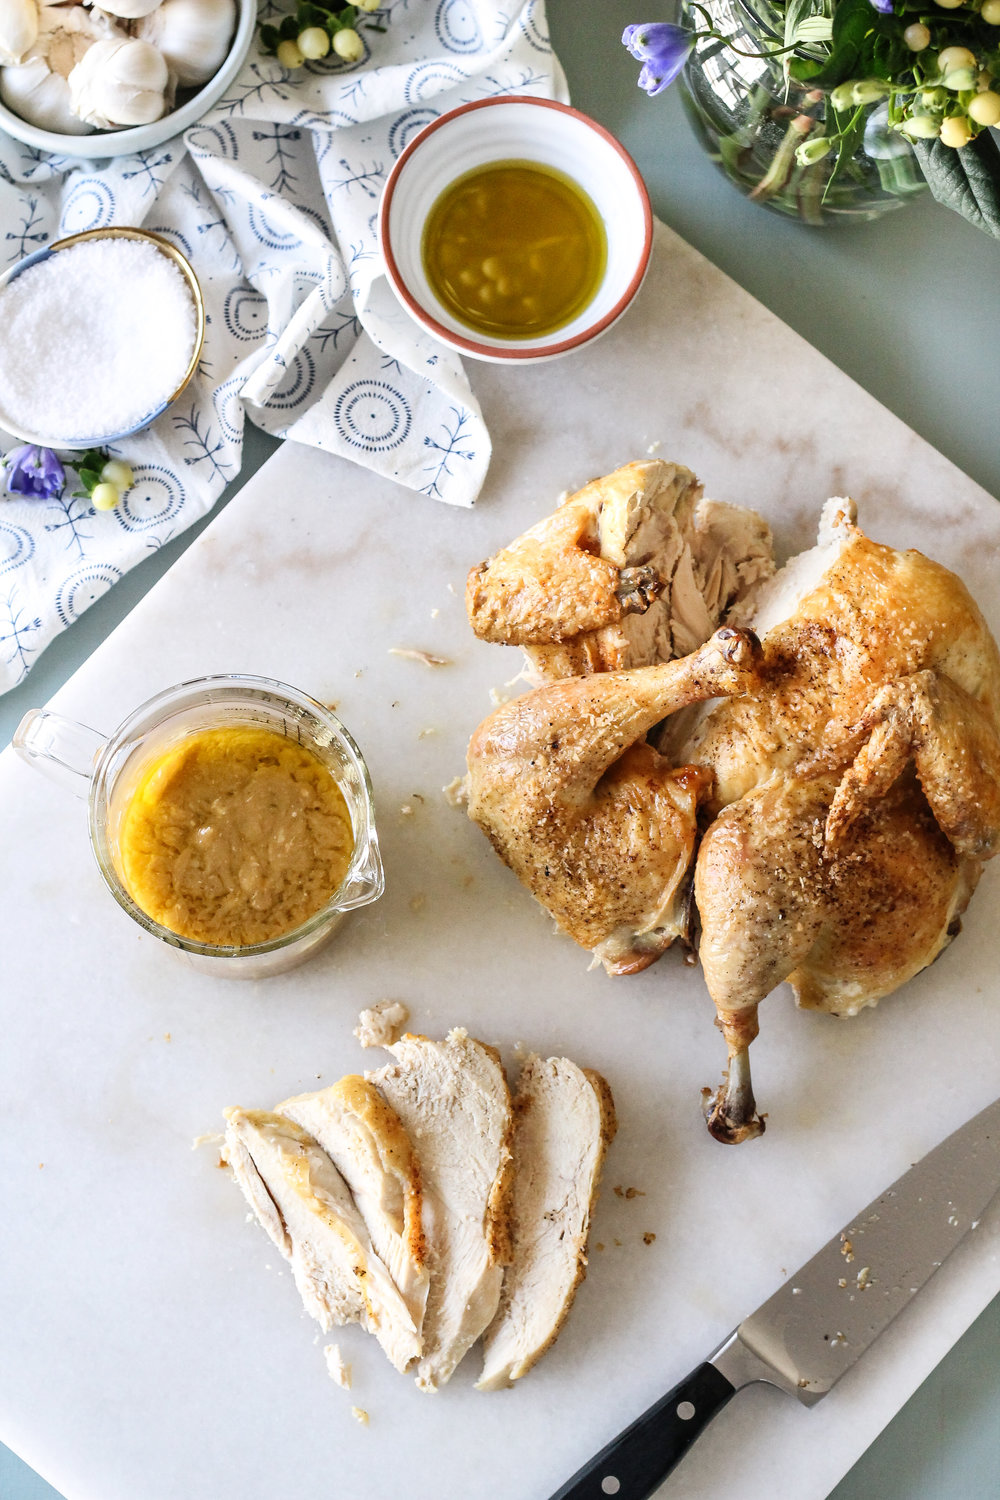 Spatchcocked Chicken with Bitter Lemon & Garlic is the perfect weeknight dinner when you need a bit of cozy!  Find the recipe on www.pedanticfoodie.com!